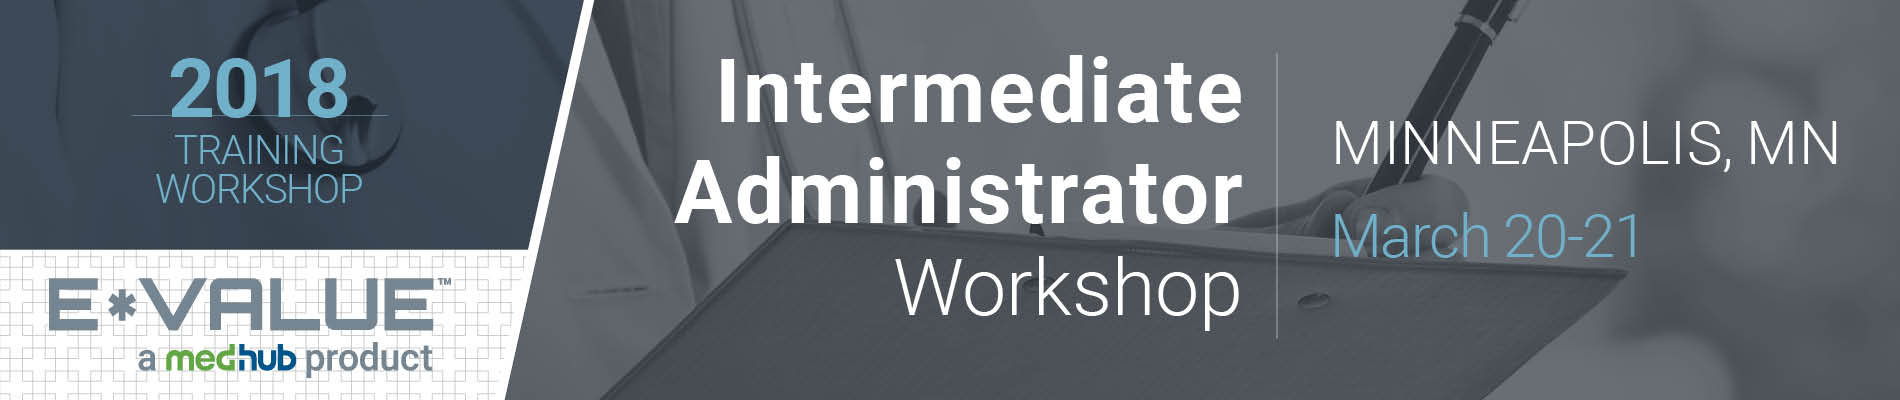 Intermediate E*Value Administrator Workshop (March 20-21)